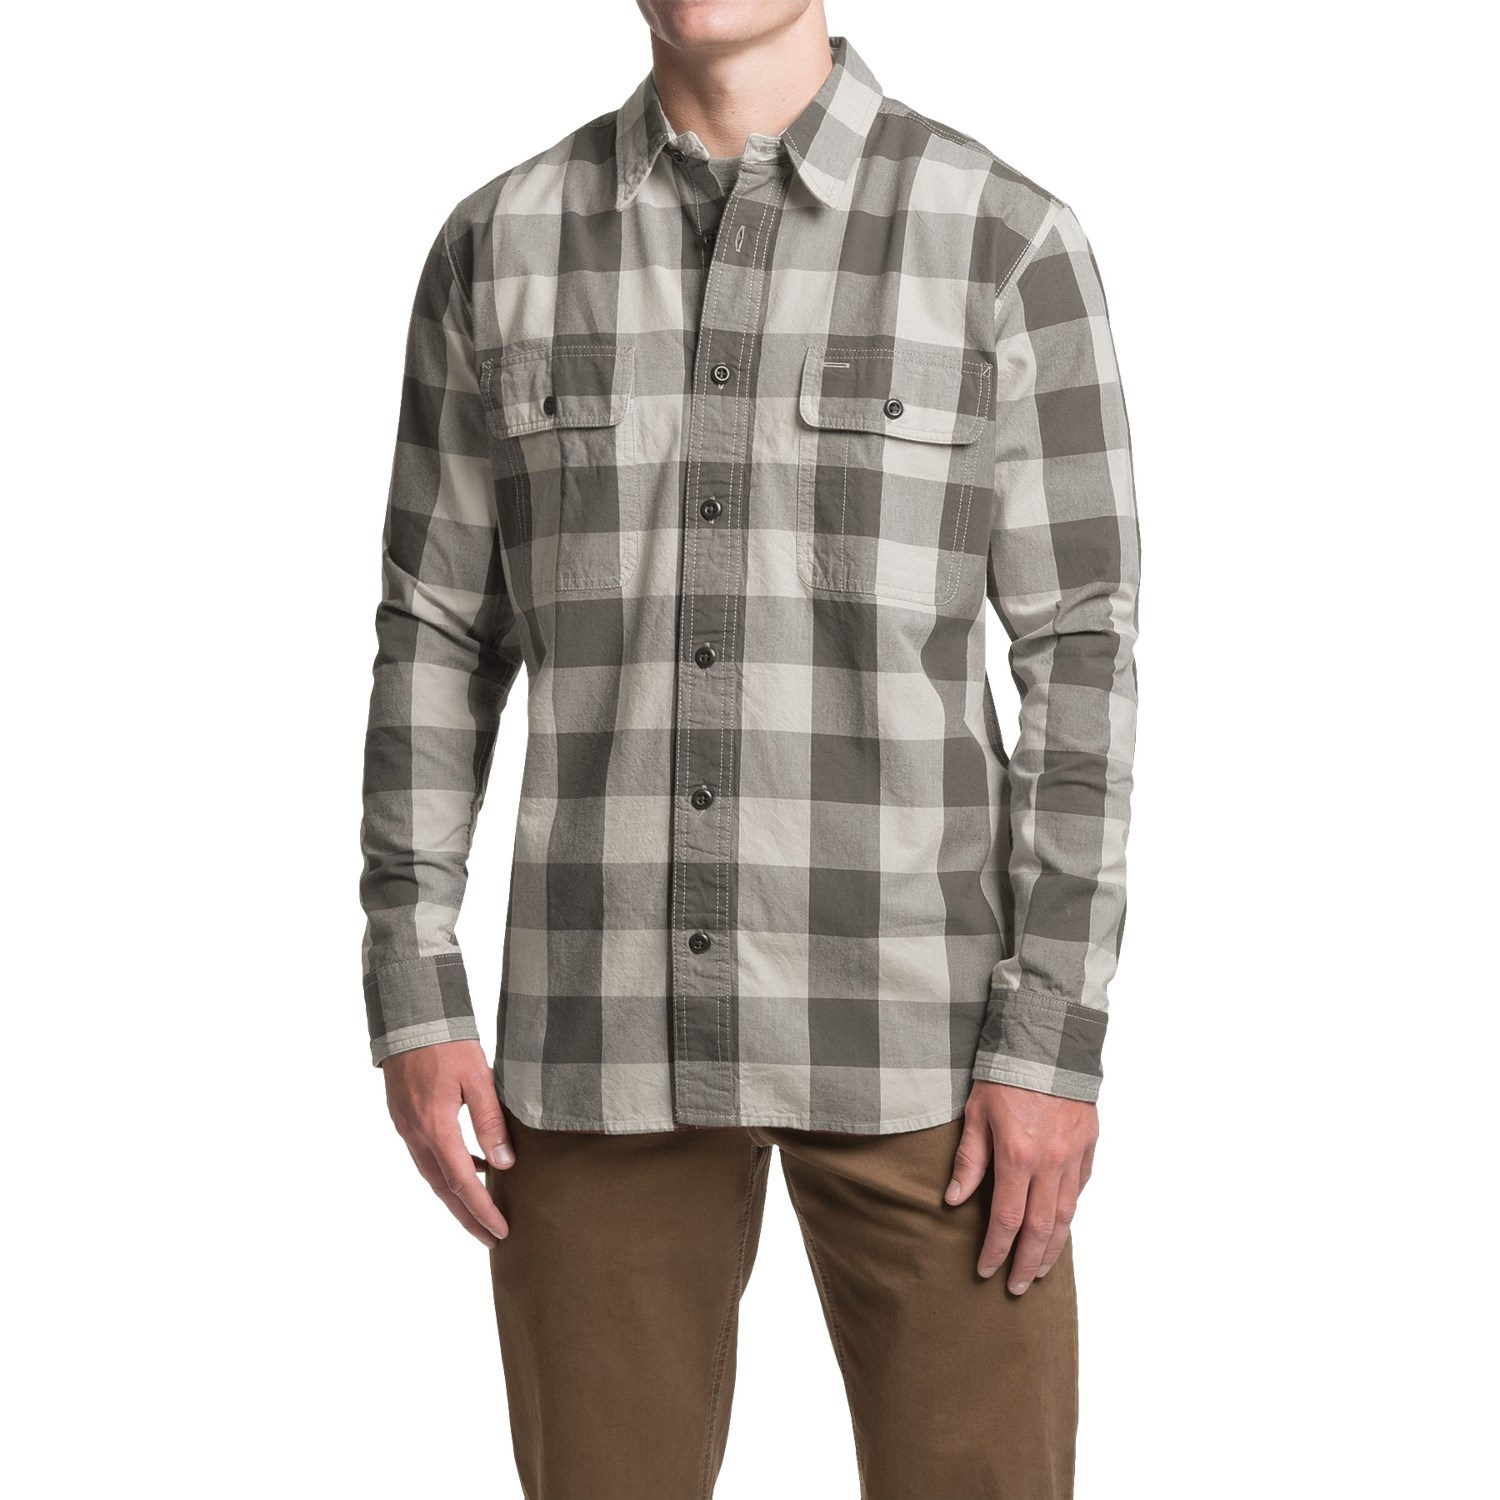 Men's UPF 50+ Sun Protection Outdoor Long Sleeve Shirt Lightweight Quick-Dry Cooling Fishing Shirts $ 26 99 Prime. out of 5 stars Columbia. Men's PFG Tamiami II Long Sleeve Fishing Shirt. from $ 24 99 Prime. out of 5 stars 1, Poulax. Women's Cotton Knitted Long Sleeve Lightweight Tunic Sweatshirt Tops.